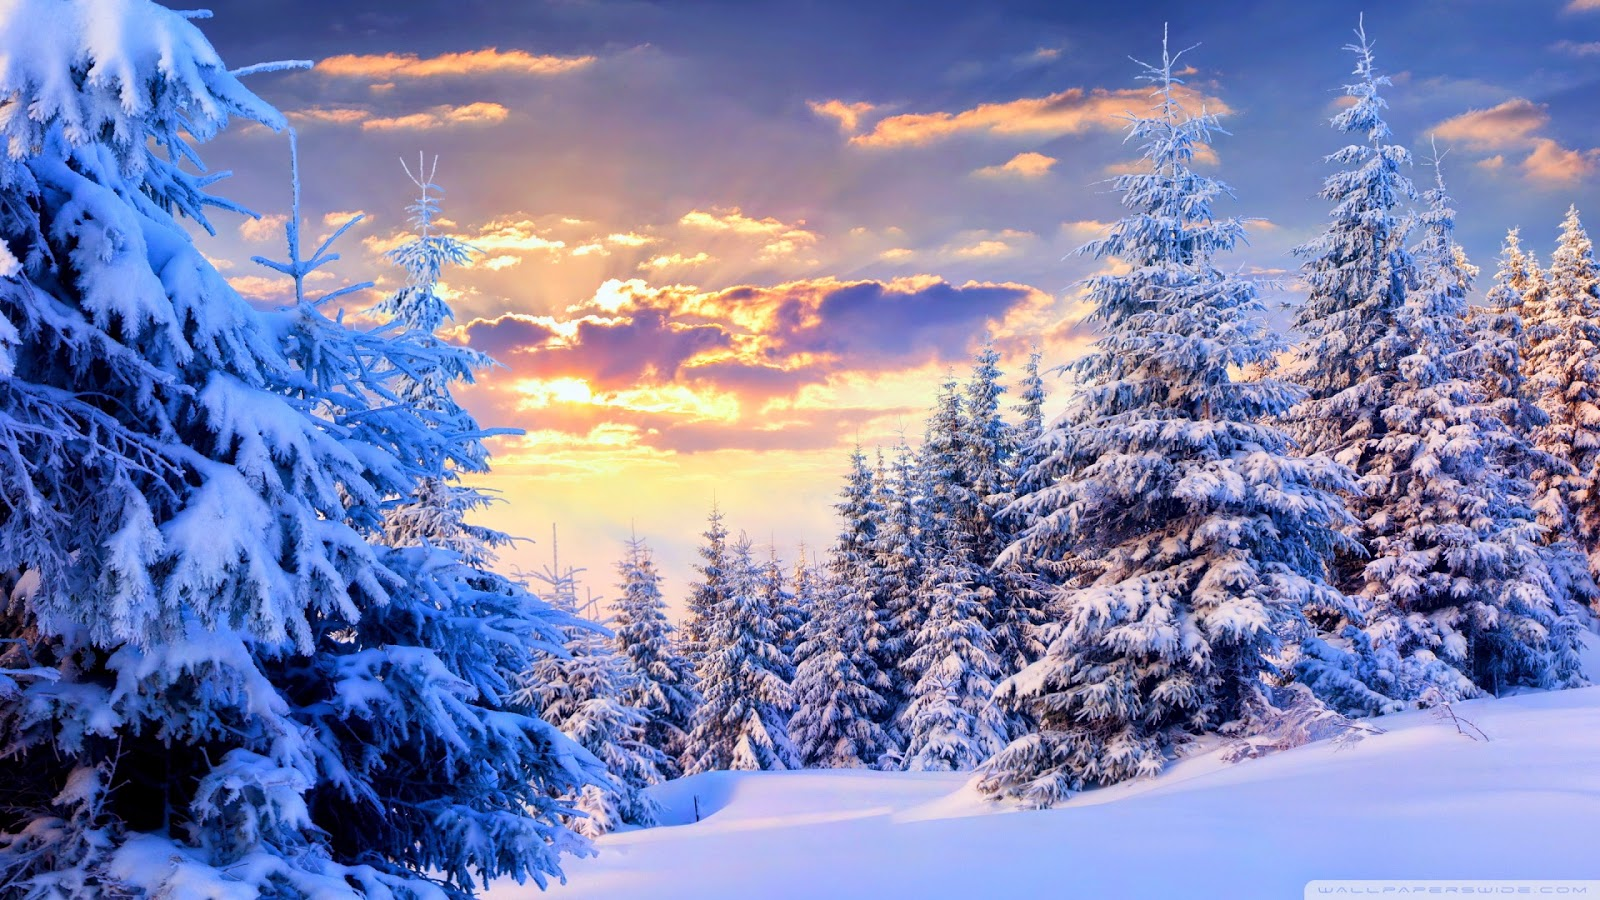 Wallpapers wide march 2015 - Snowy wallpaper ...